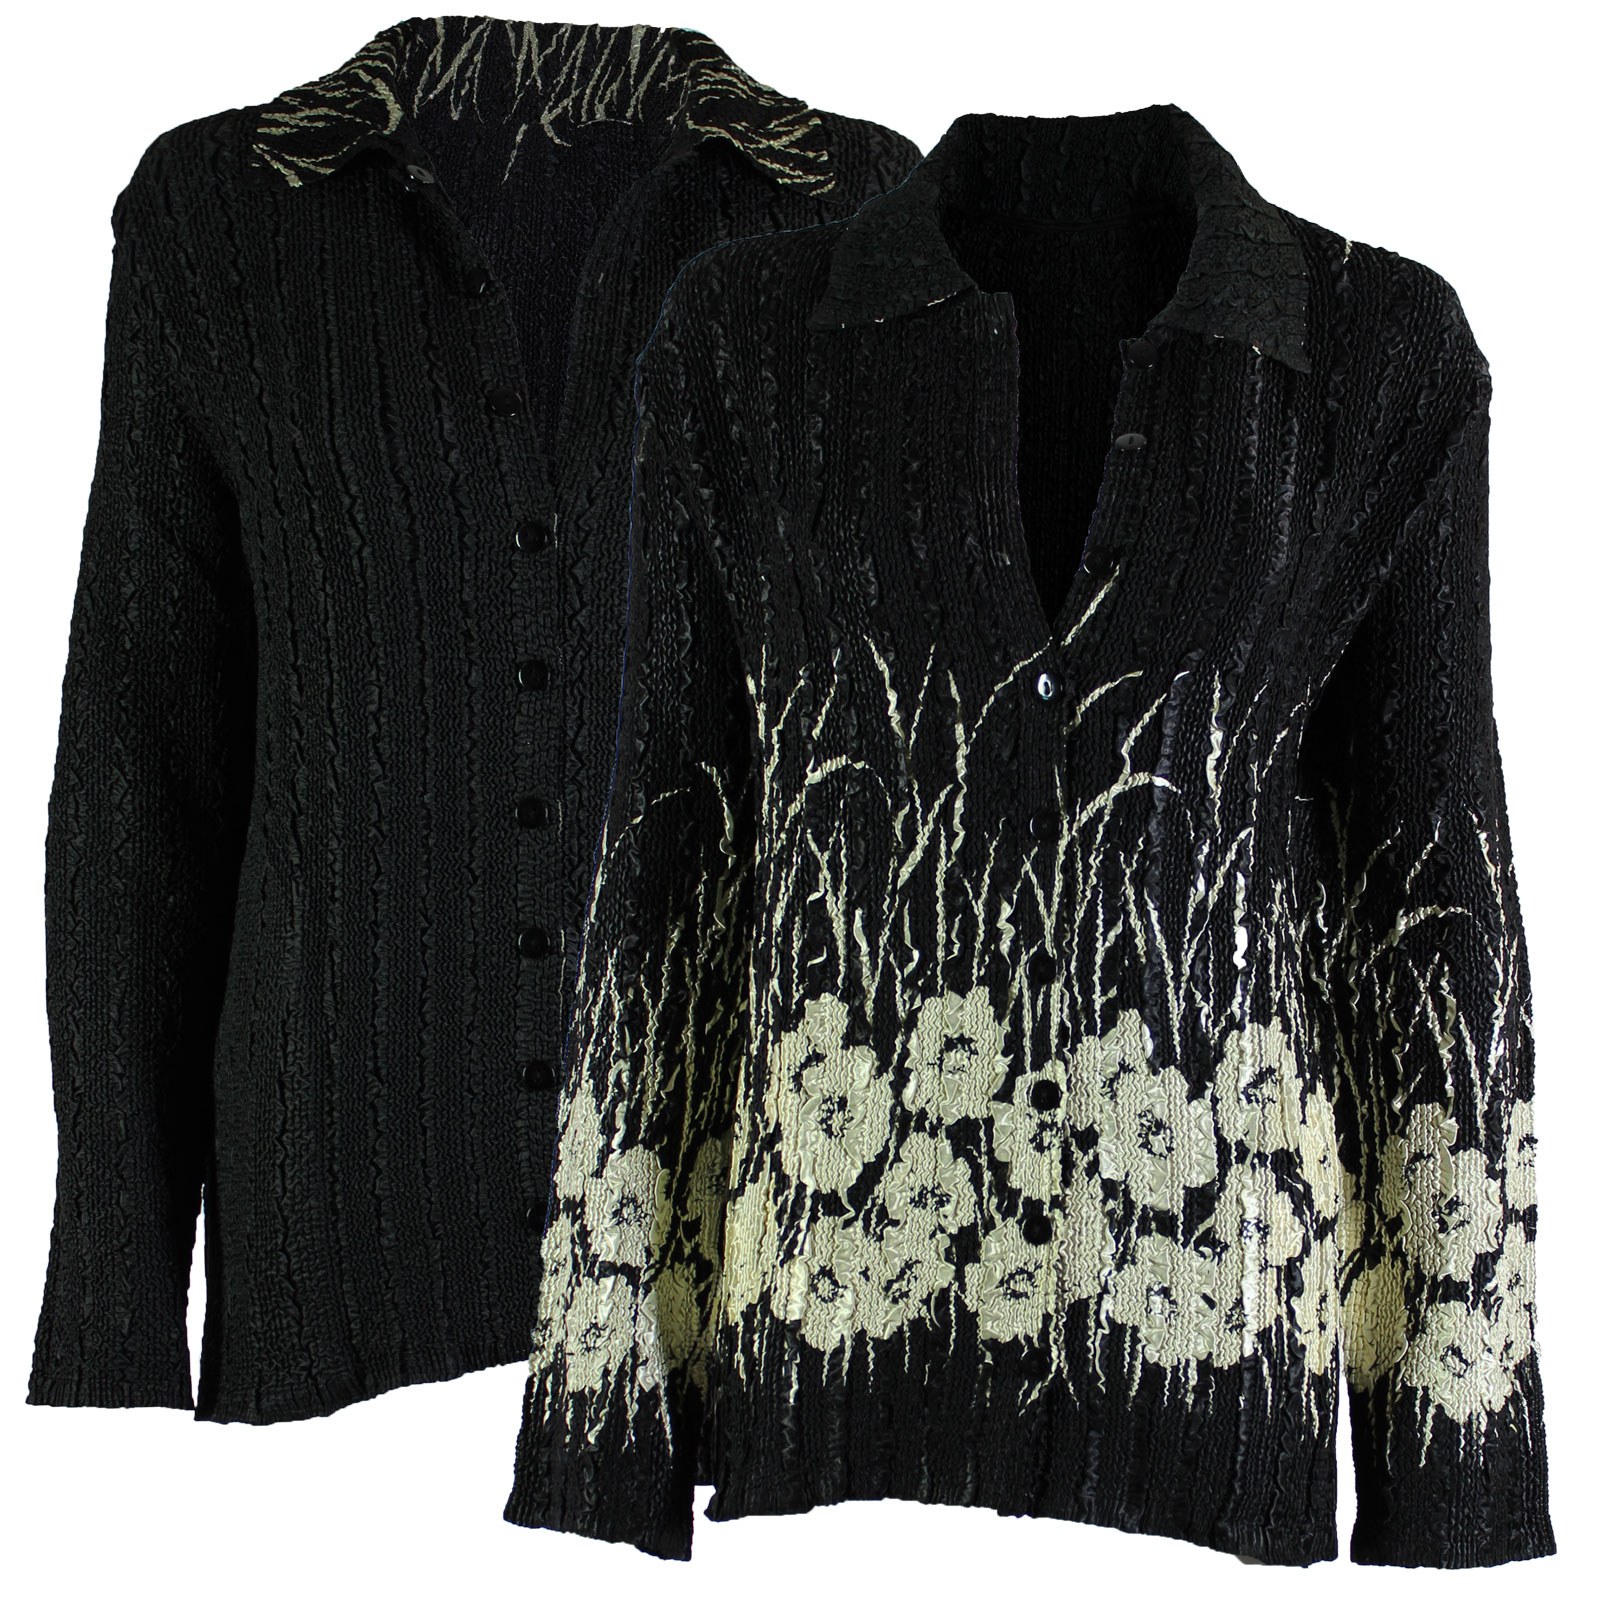 Wholesale Magic Crush - Reversible Jackets Ivory Poppies on Black reverses to Solid Black - L-XL